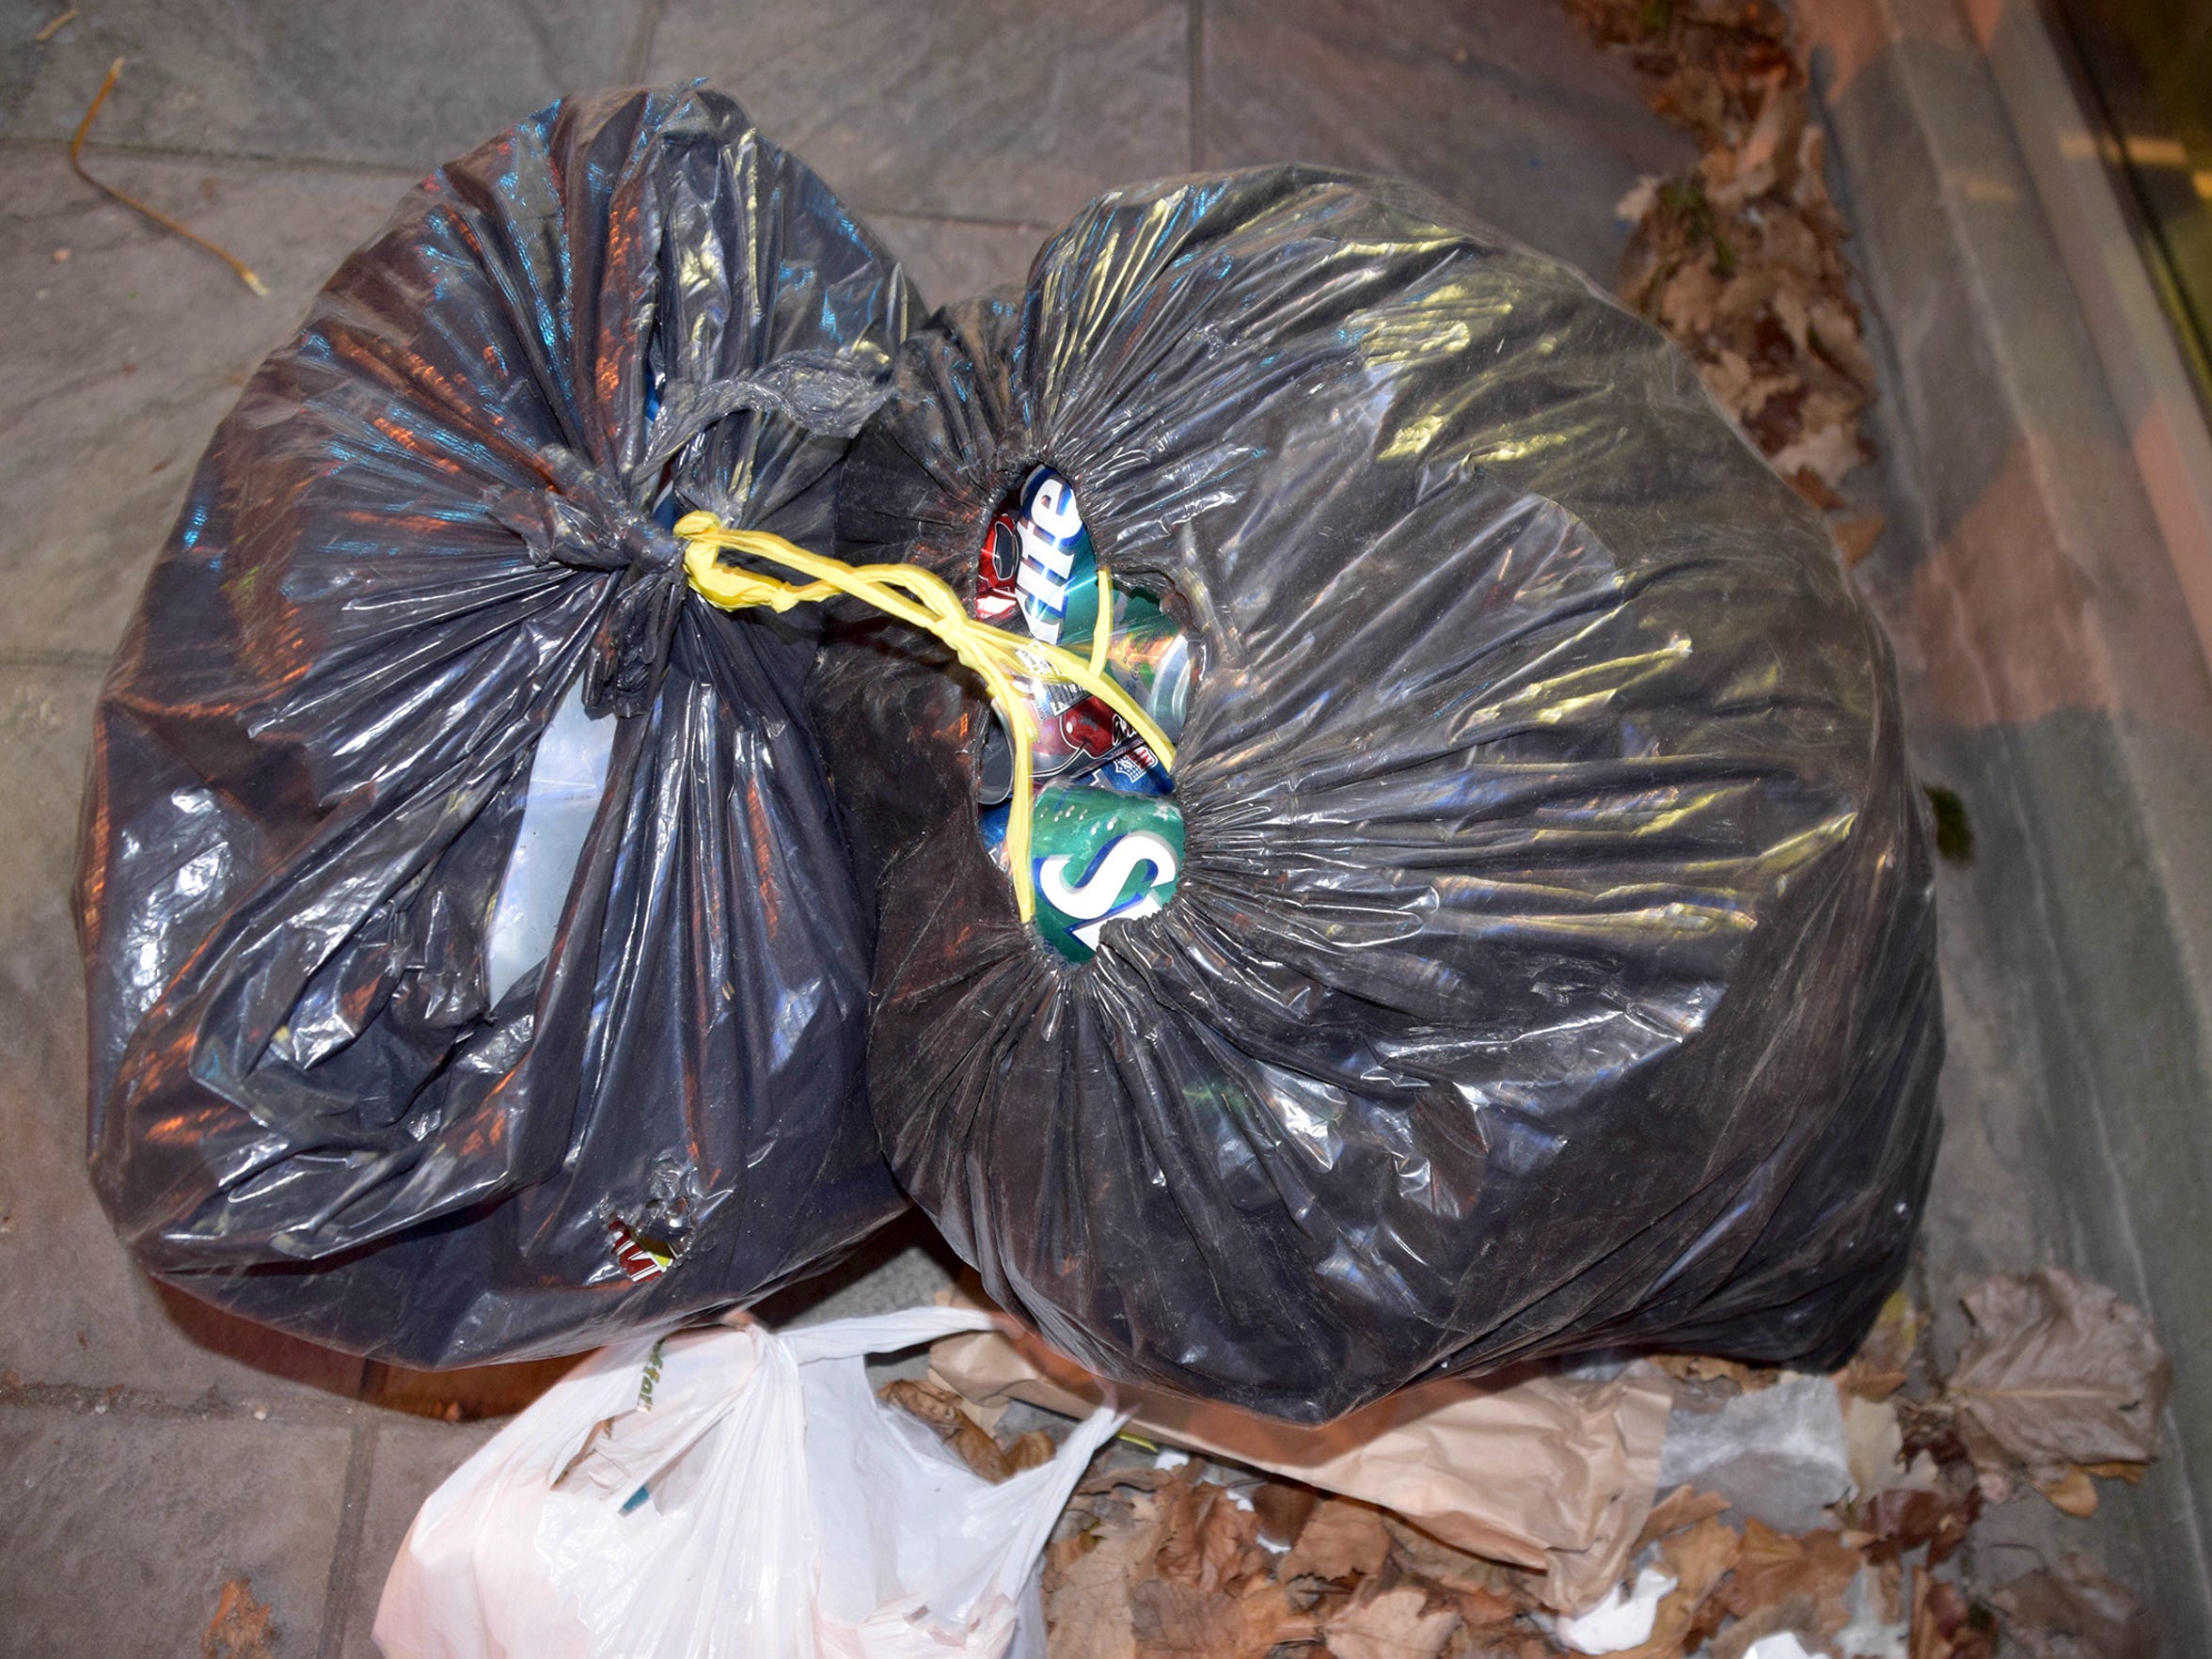 Two bags of aluminum cans lay among the possessions